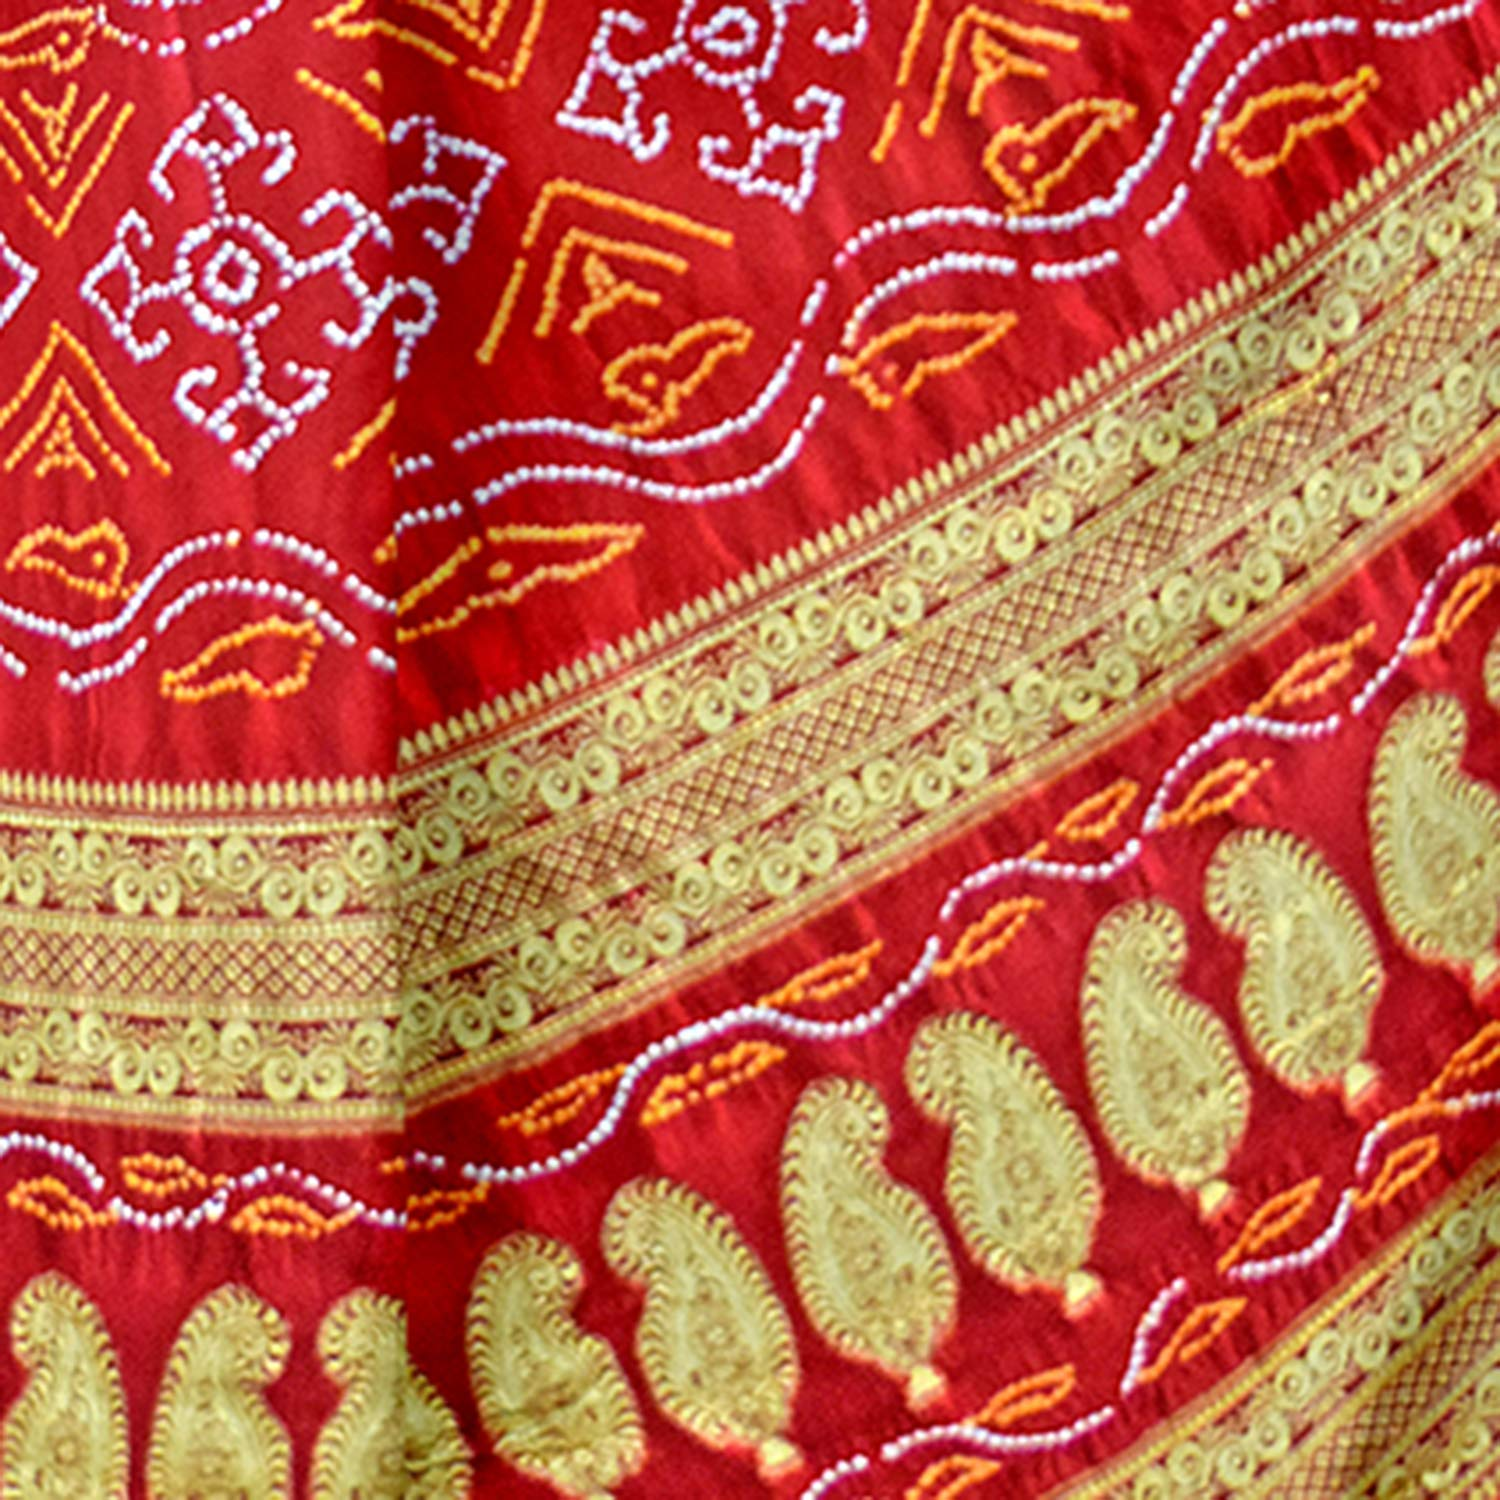 6790a02f3d69c Kala Sanskruti Women s Red Gaji Silk Printed Bandhej Saree  Amazon.in   Clothing   Accessories